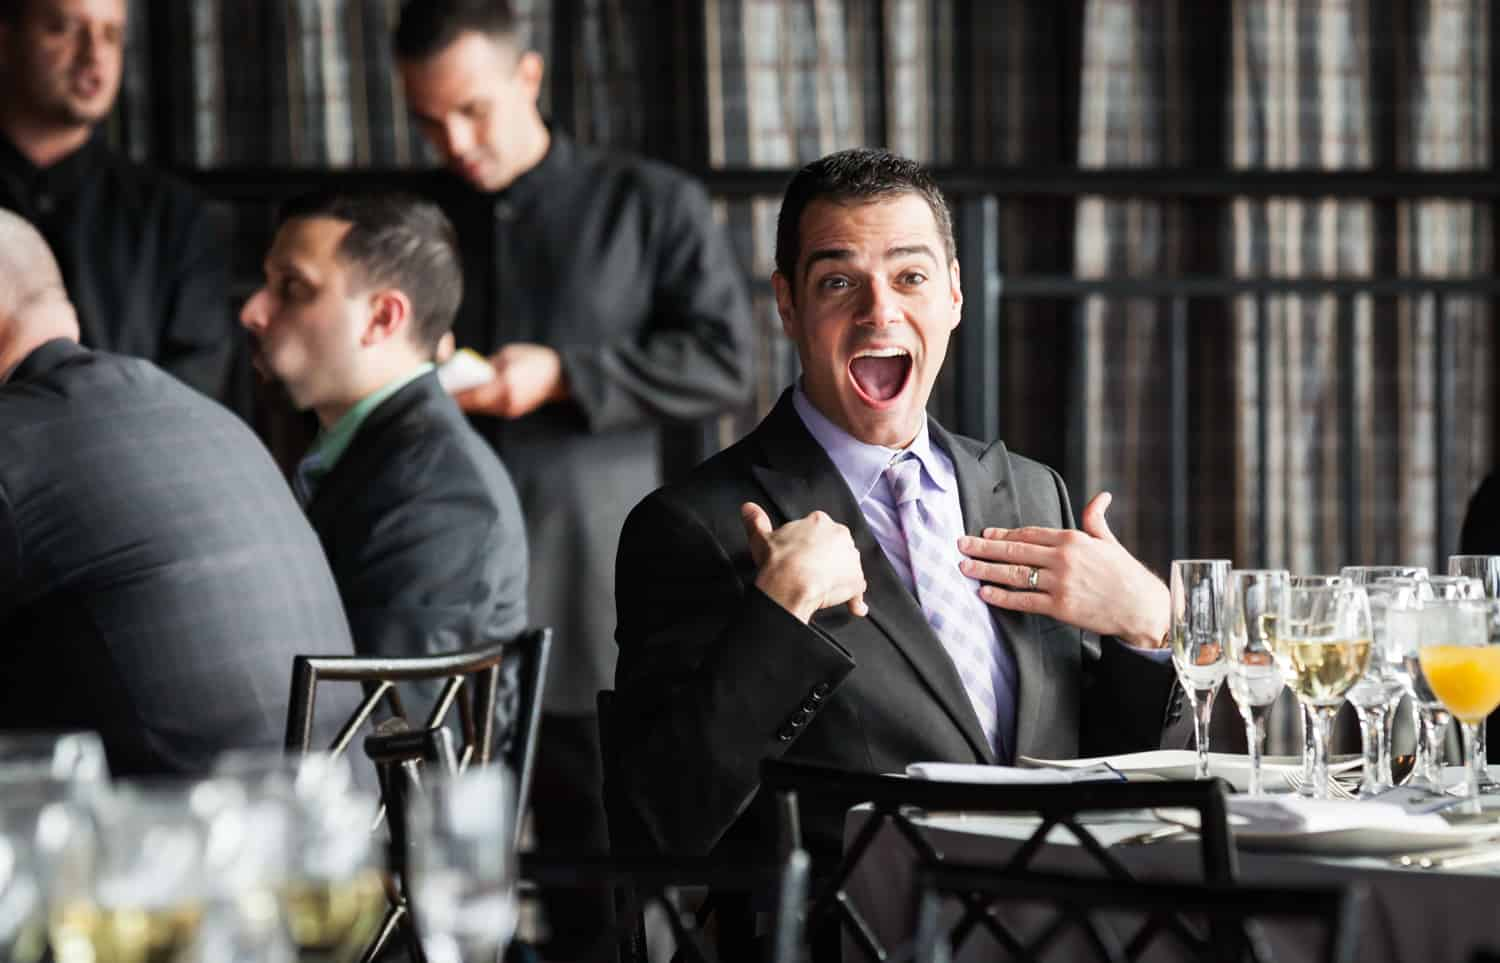 Male guest gesturing to himself at table